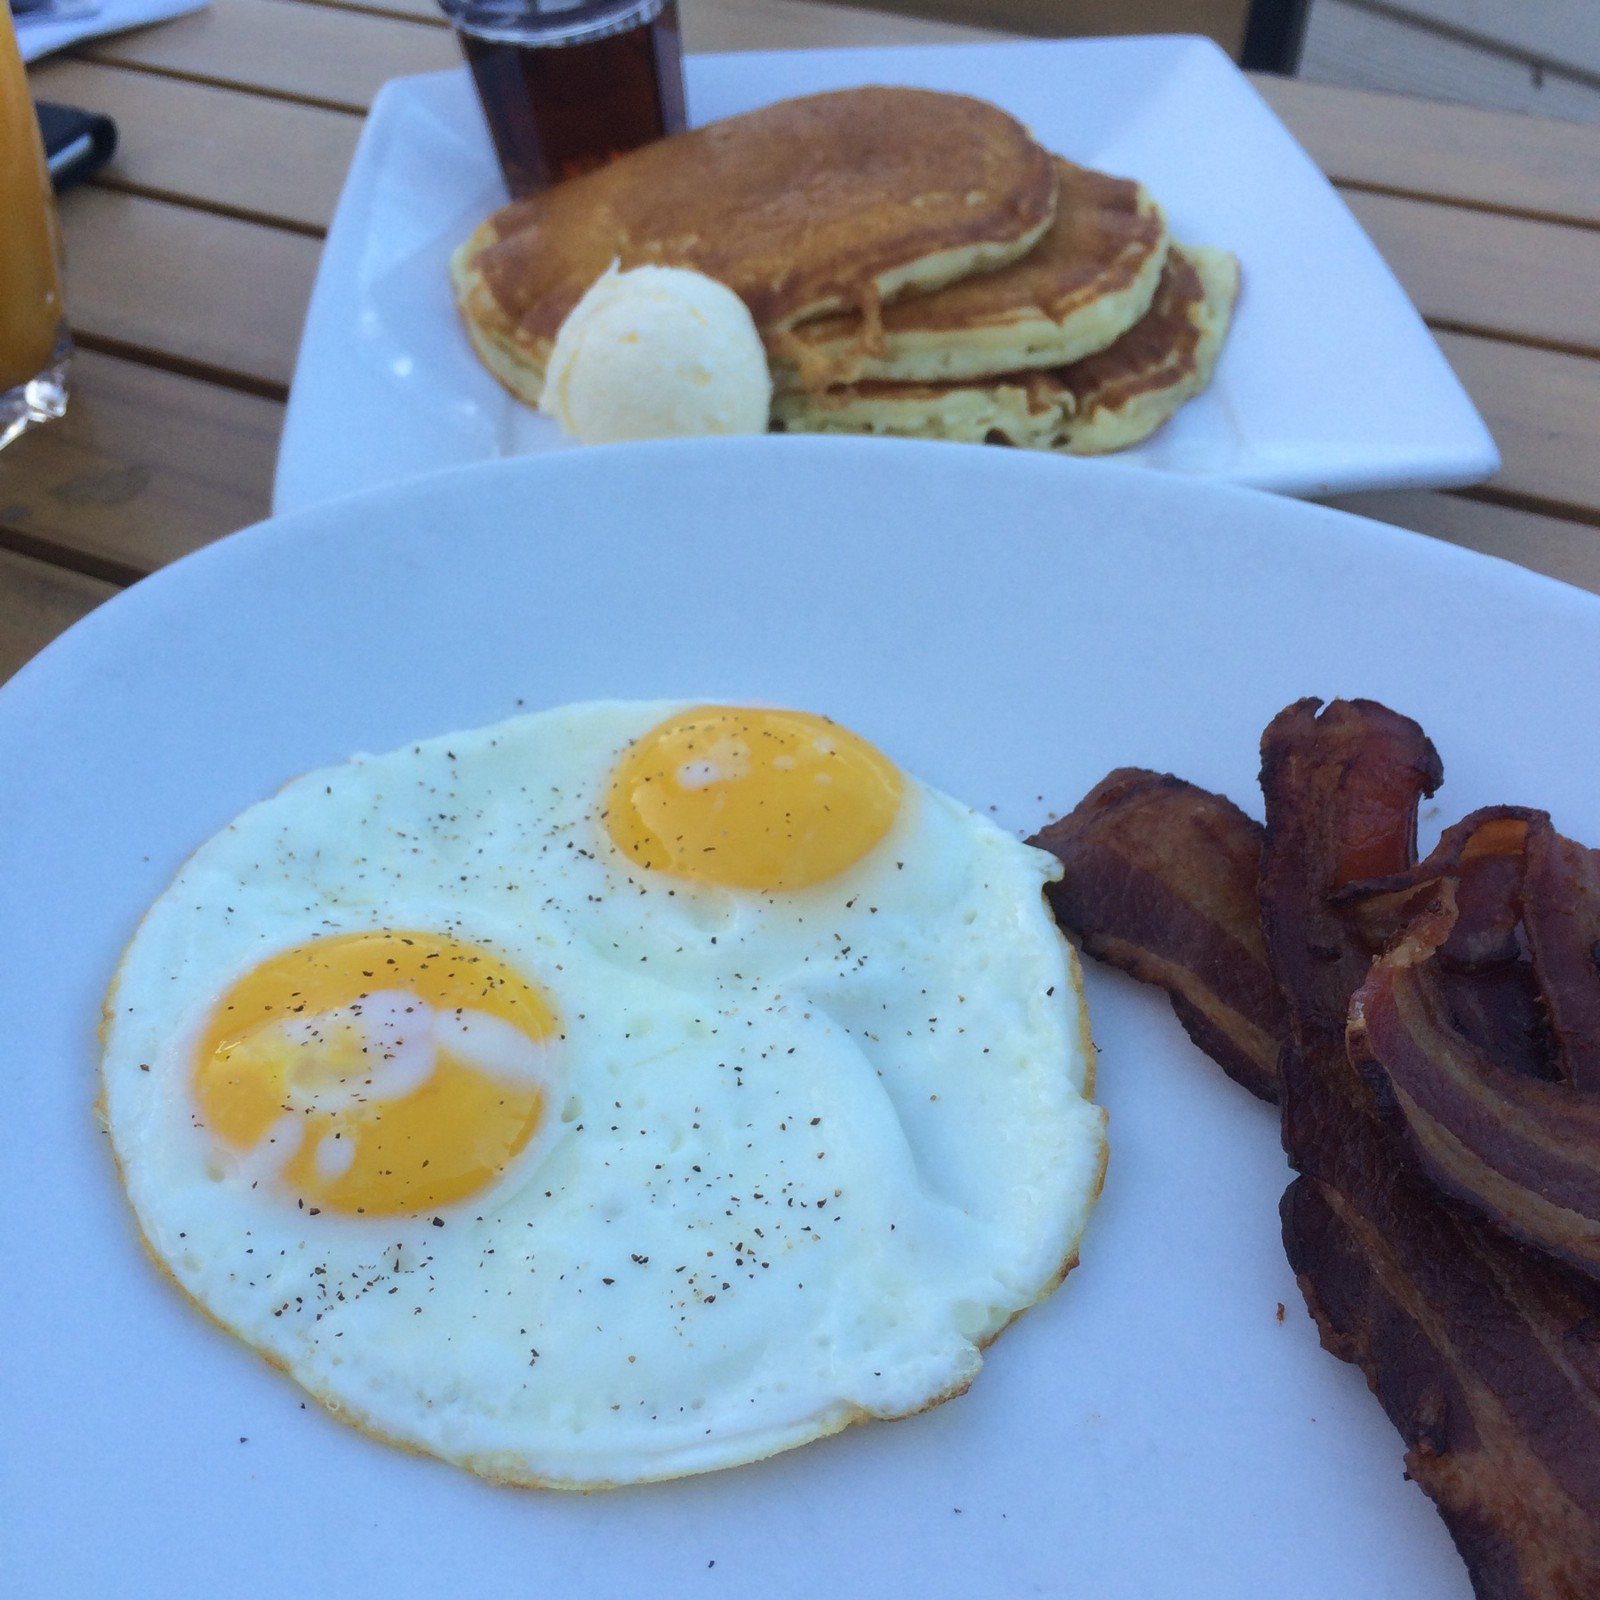 The classic eggs and bacon were great, but the pancakes were some of the best I've ever had.